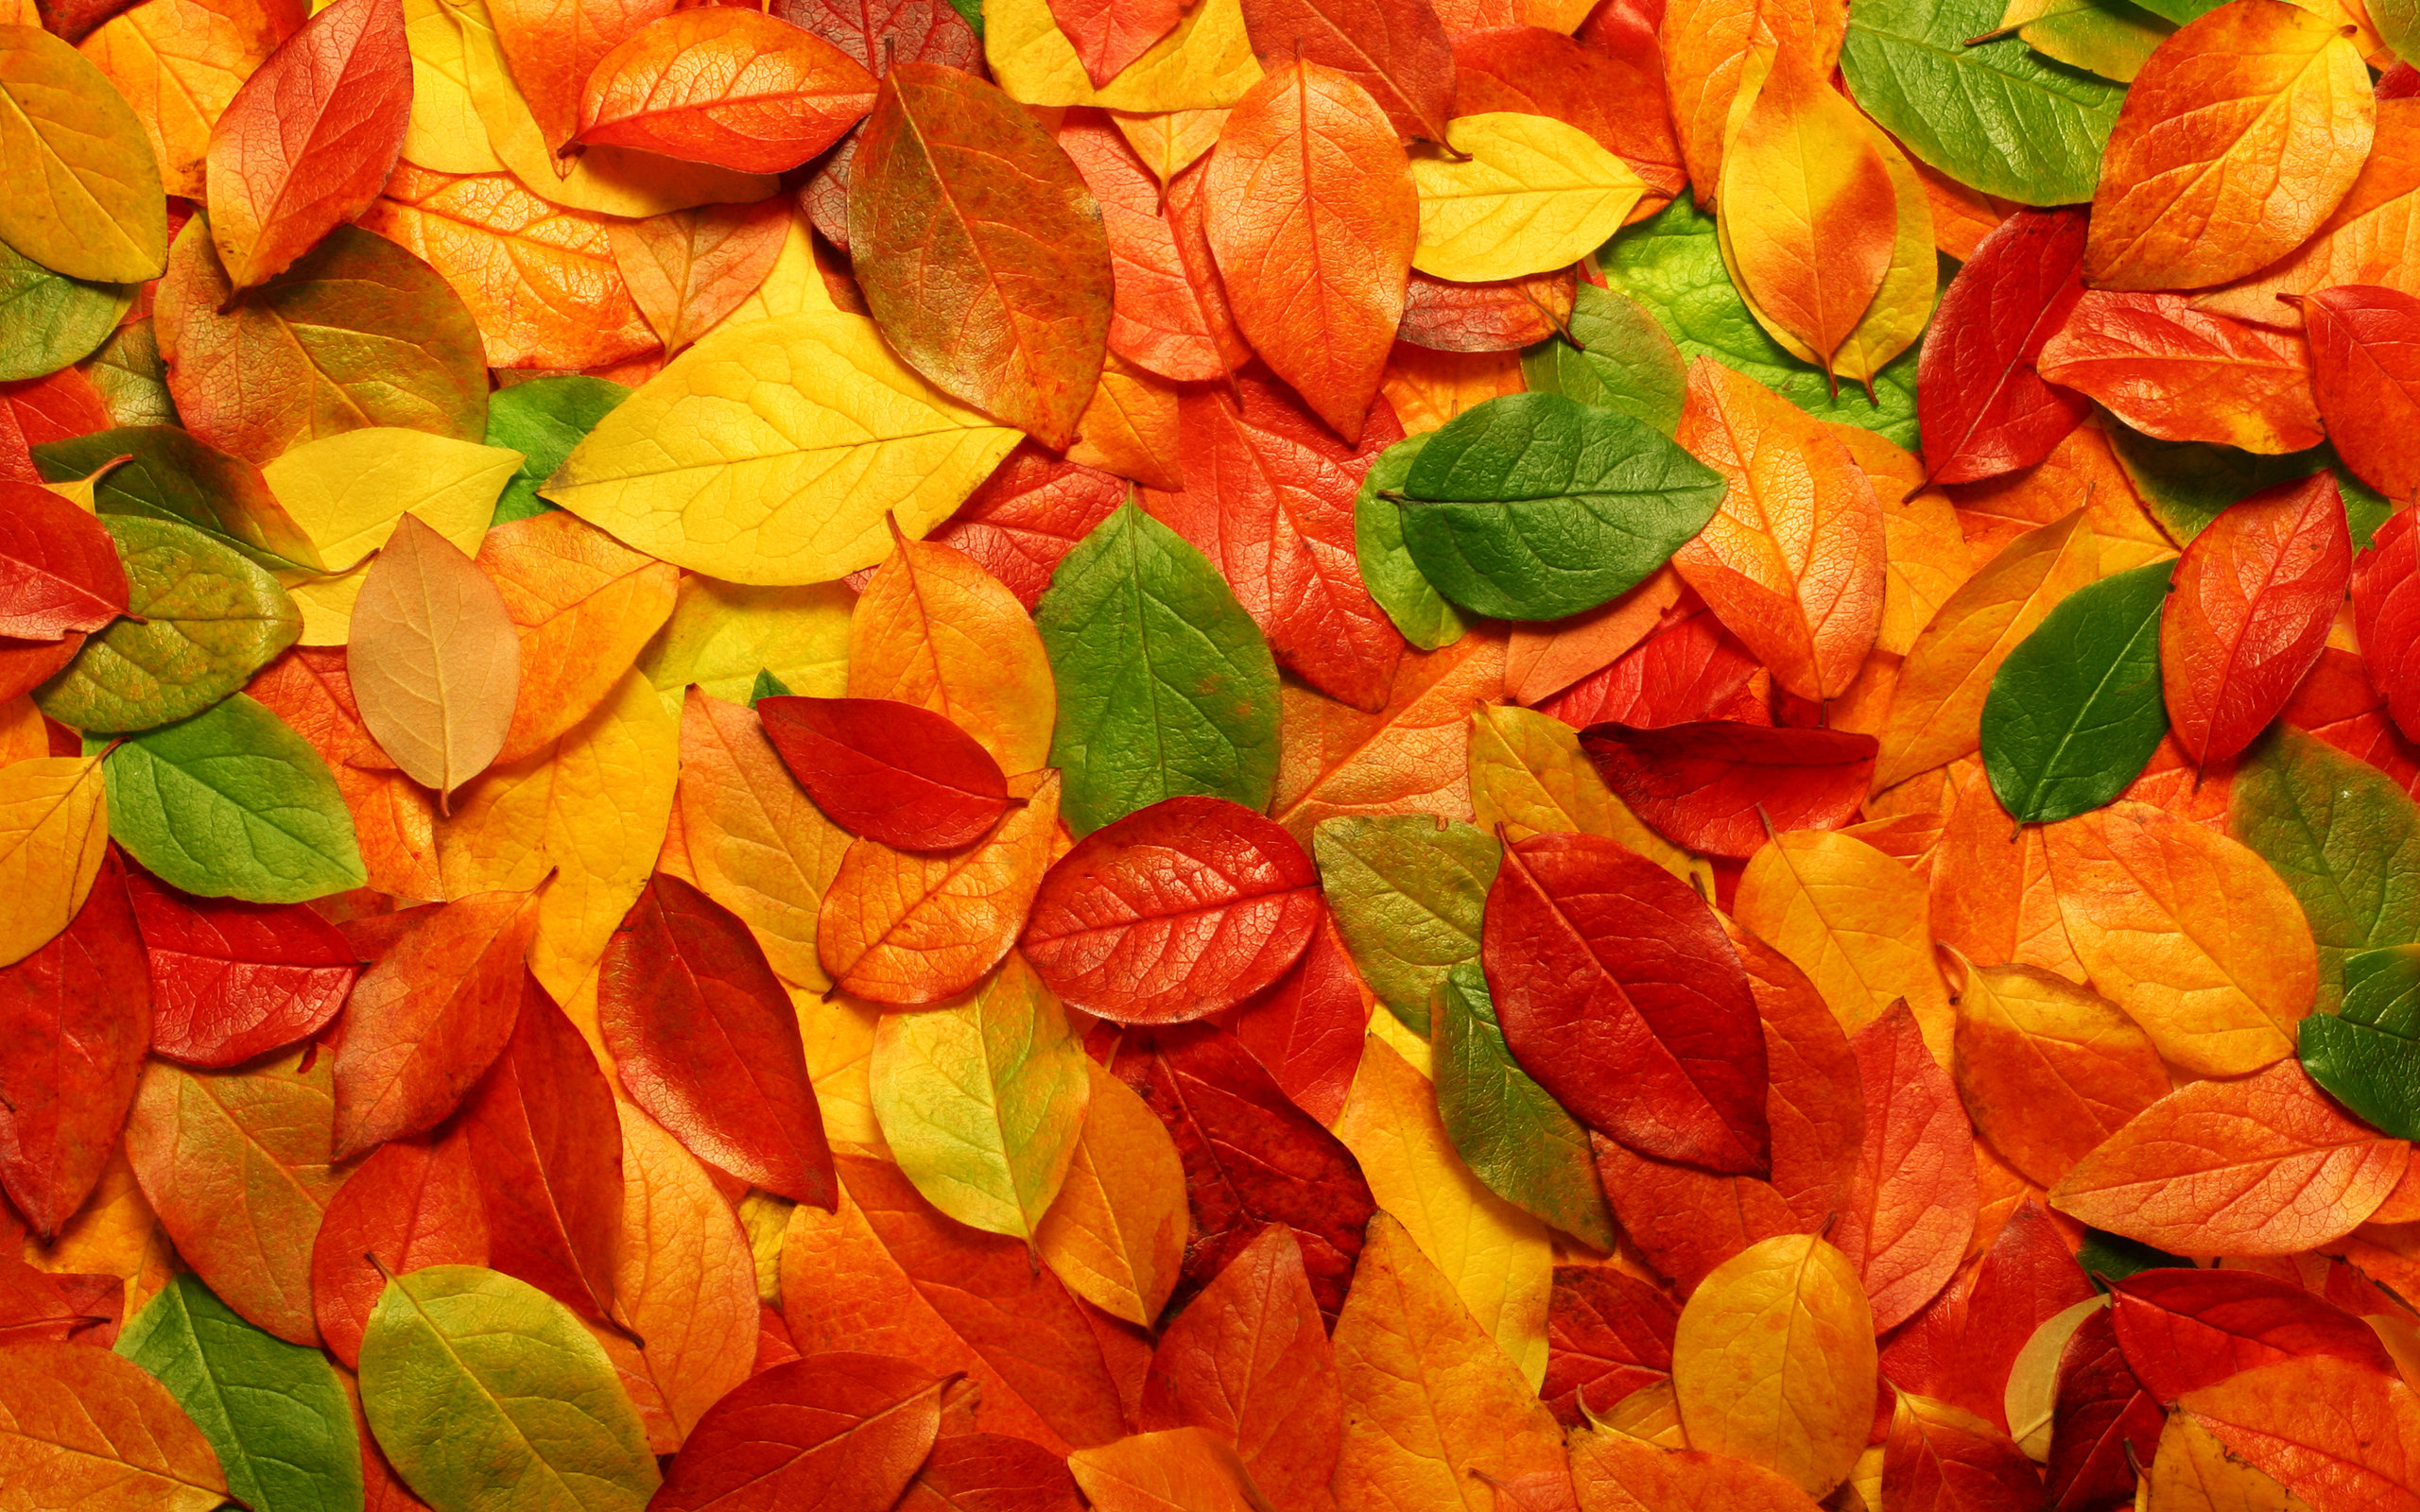 Autumn Leaves Wallpaper 2560x1600 70284